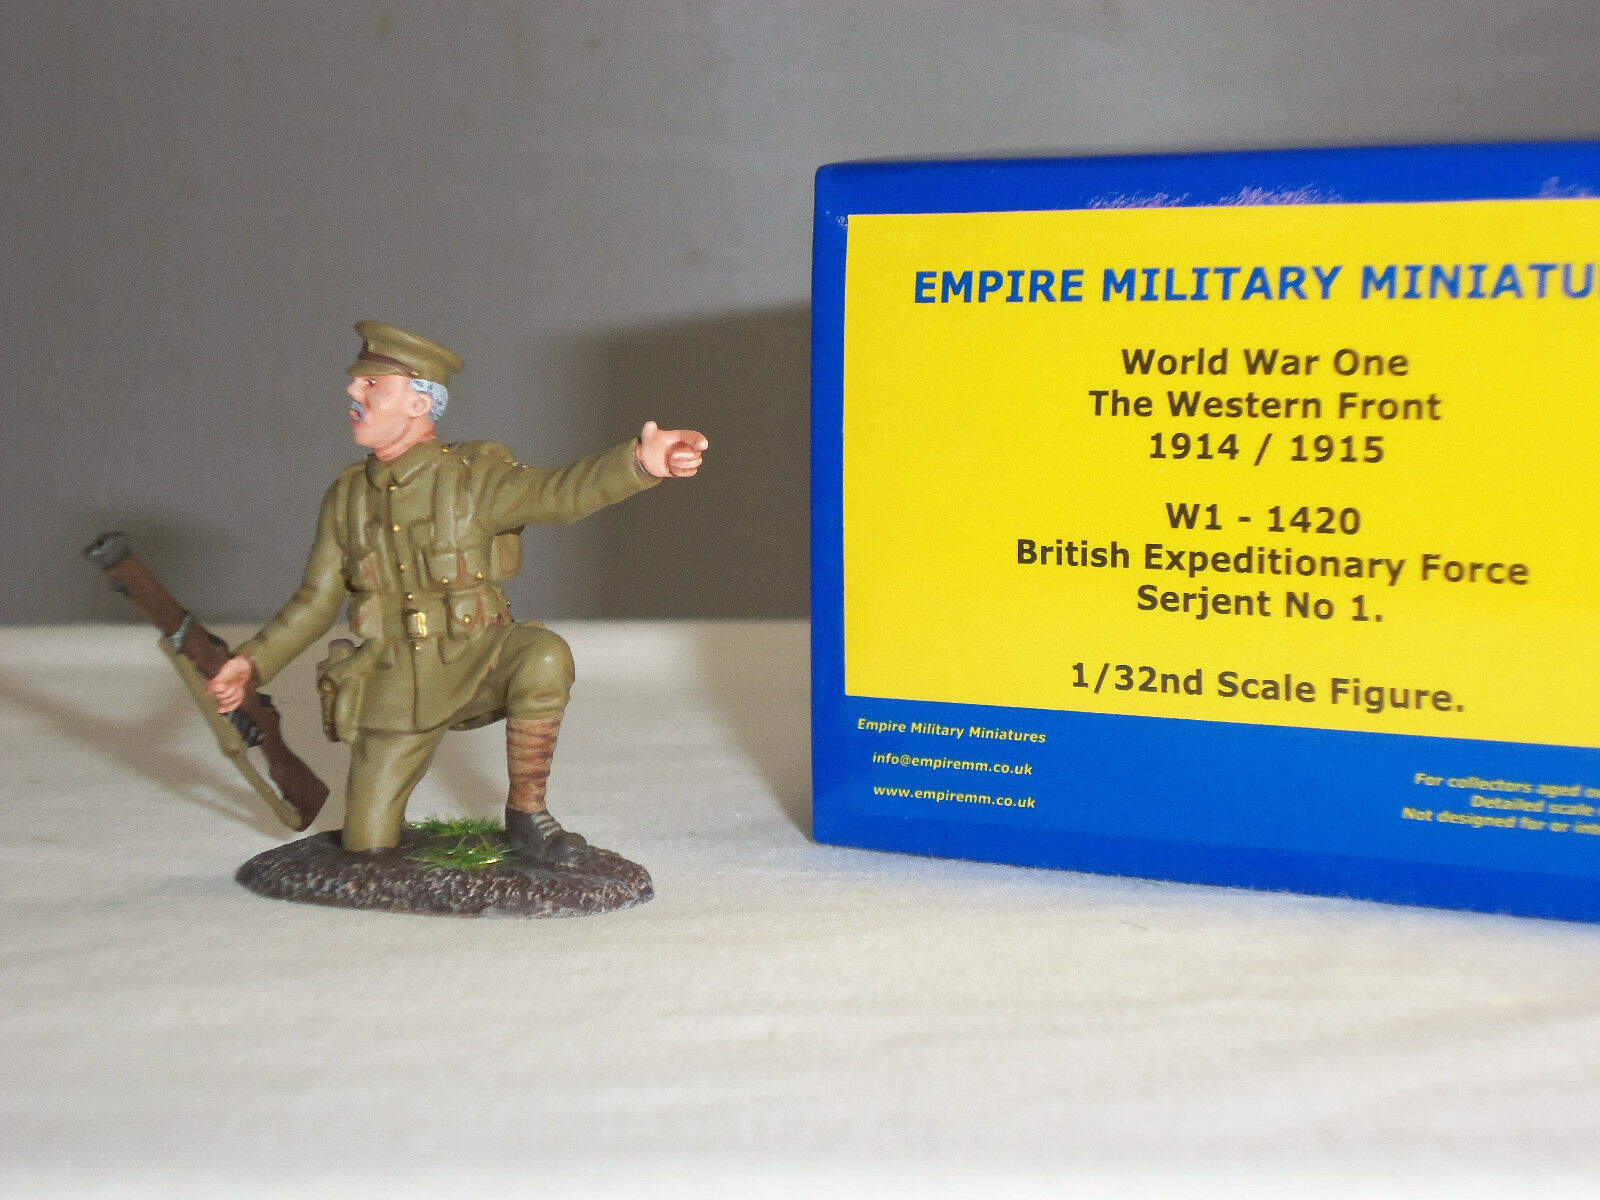 EMPIRE W1-1420 BRITISH EXPEDITIONARY FORCE SERGEANT METAL TOY SOLDIER FIGURE